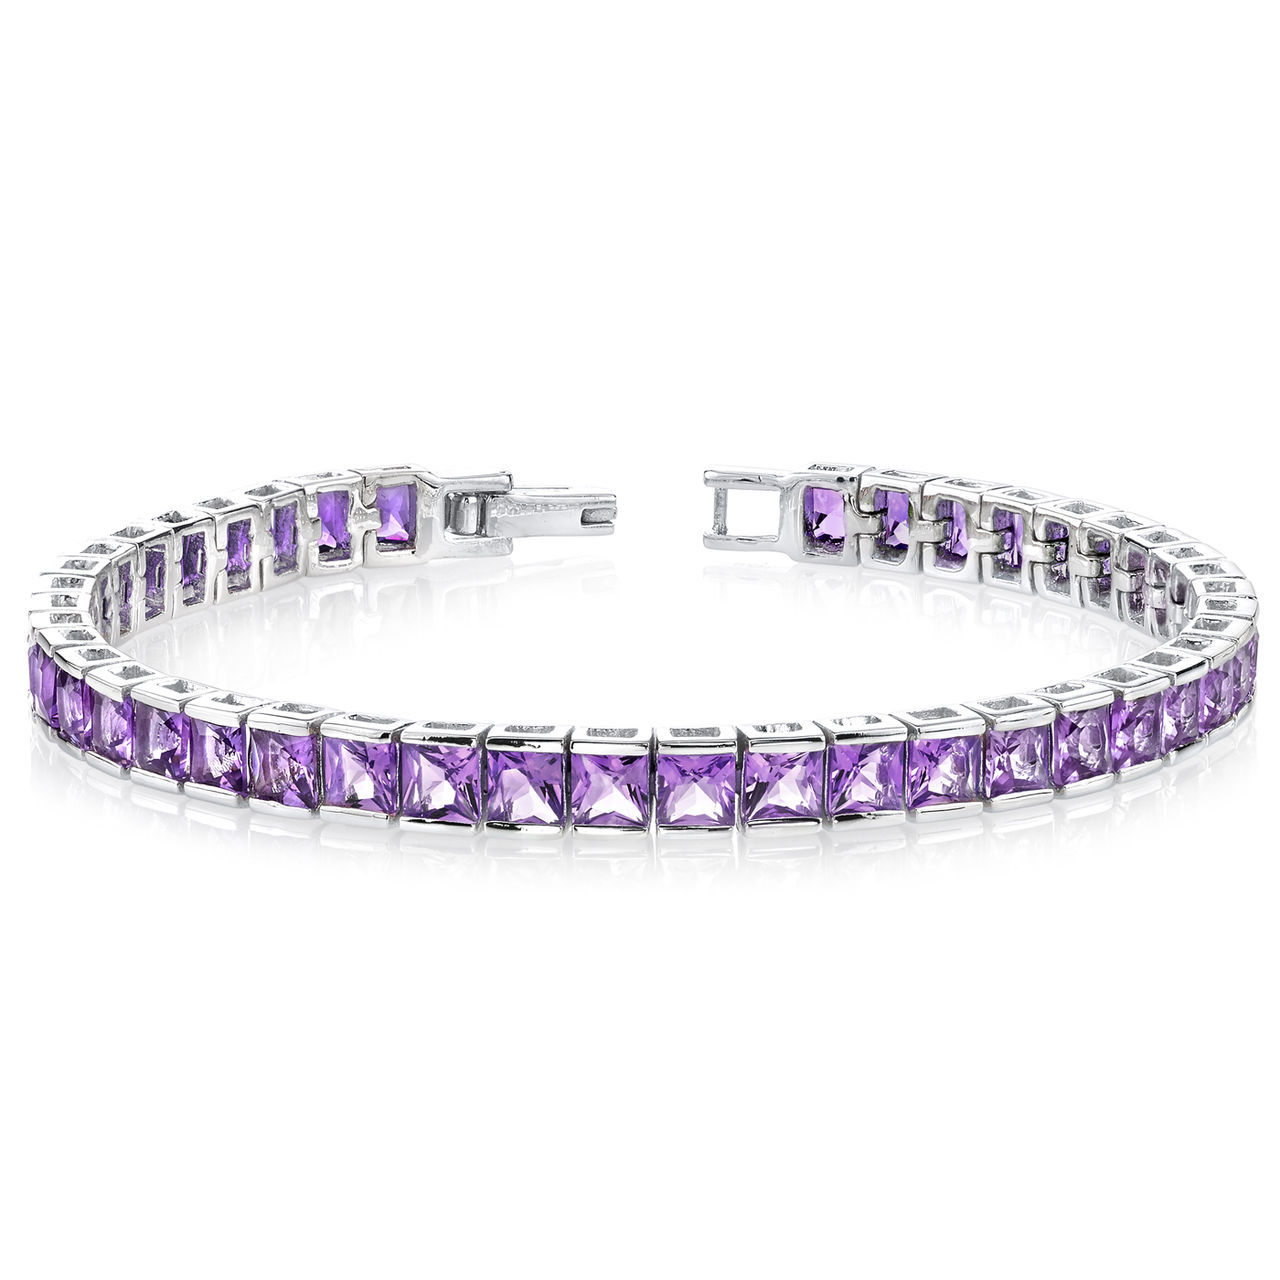 Primary image for Women's Sterling Silver Genuine Princess Cut Amethyst Bracelet